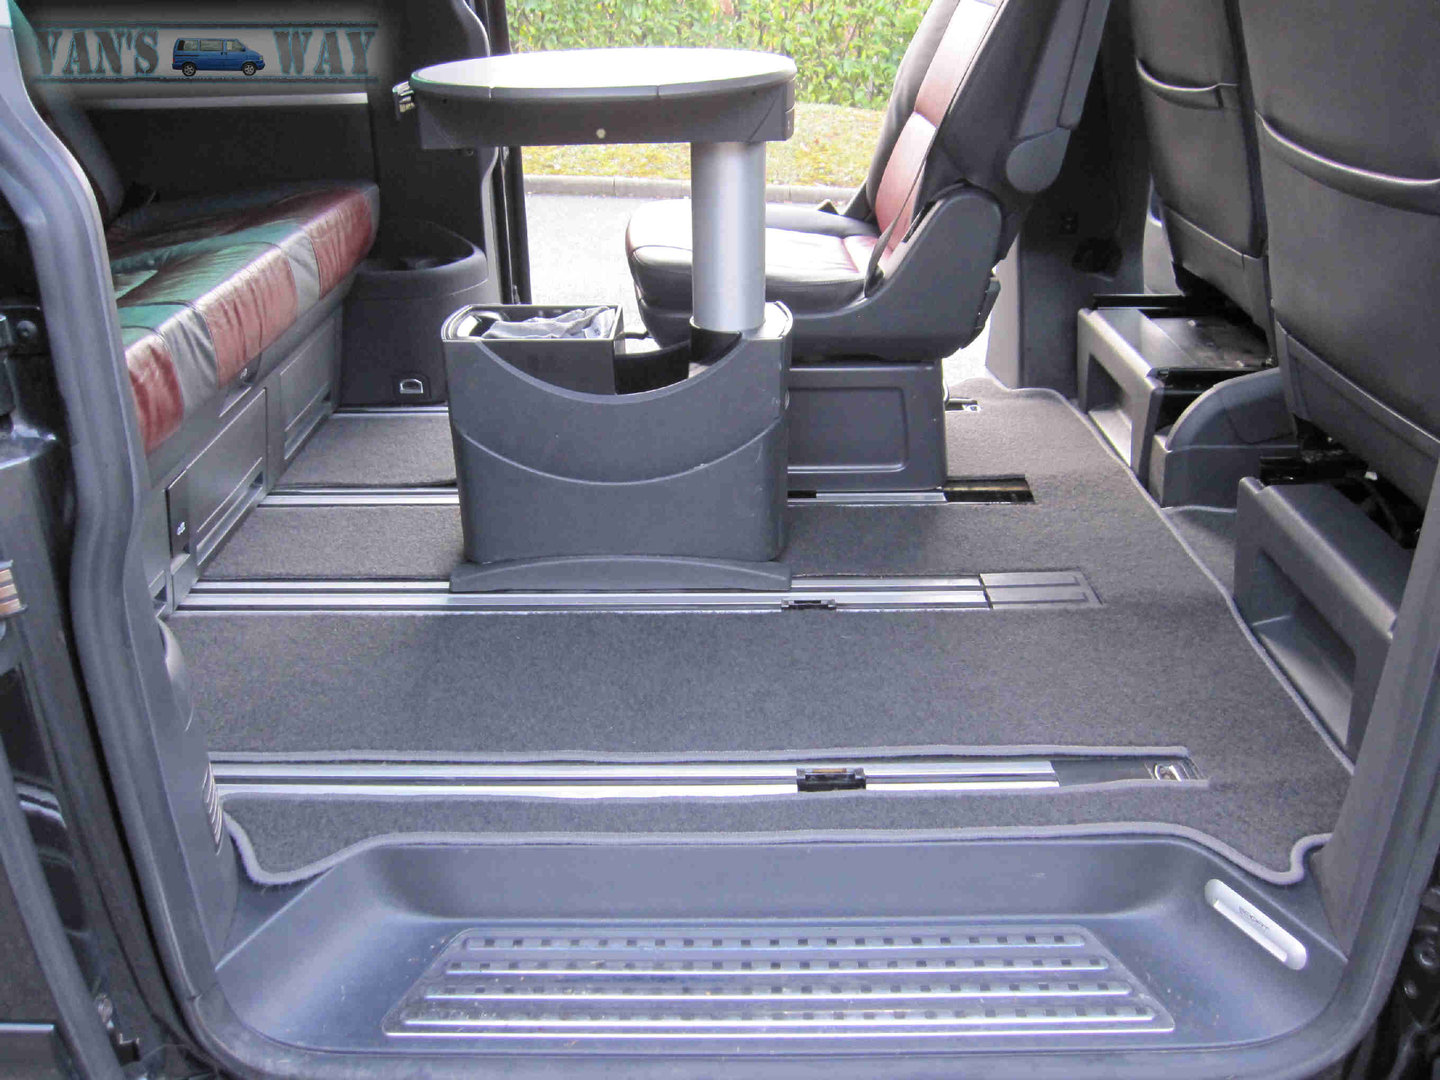 ensemble tapis vw t5 multivan gris anthracite. Black Bedroom Furniture Sets. Home Design Ideas